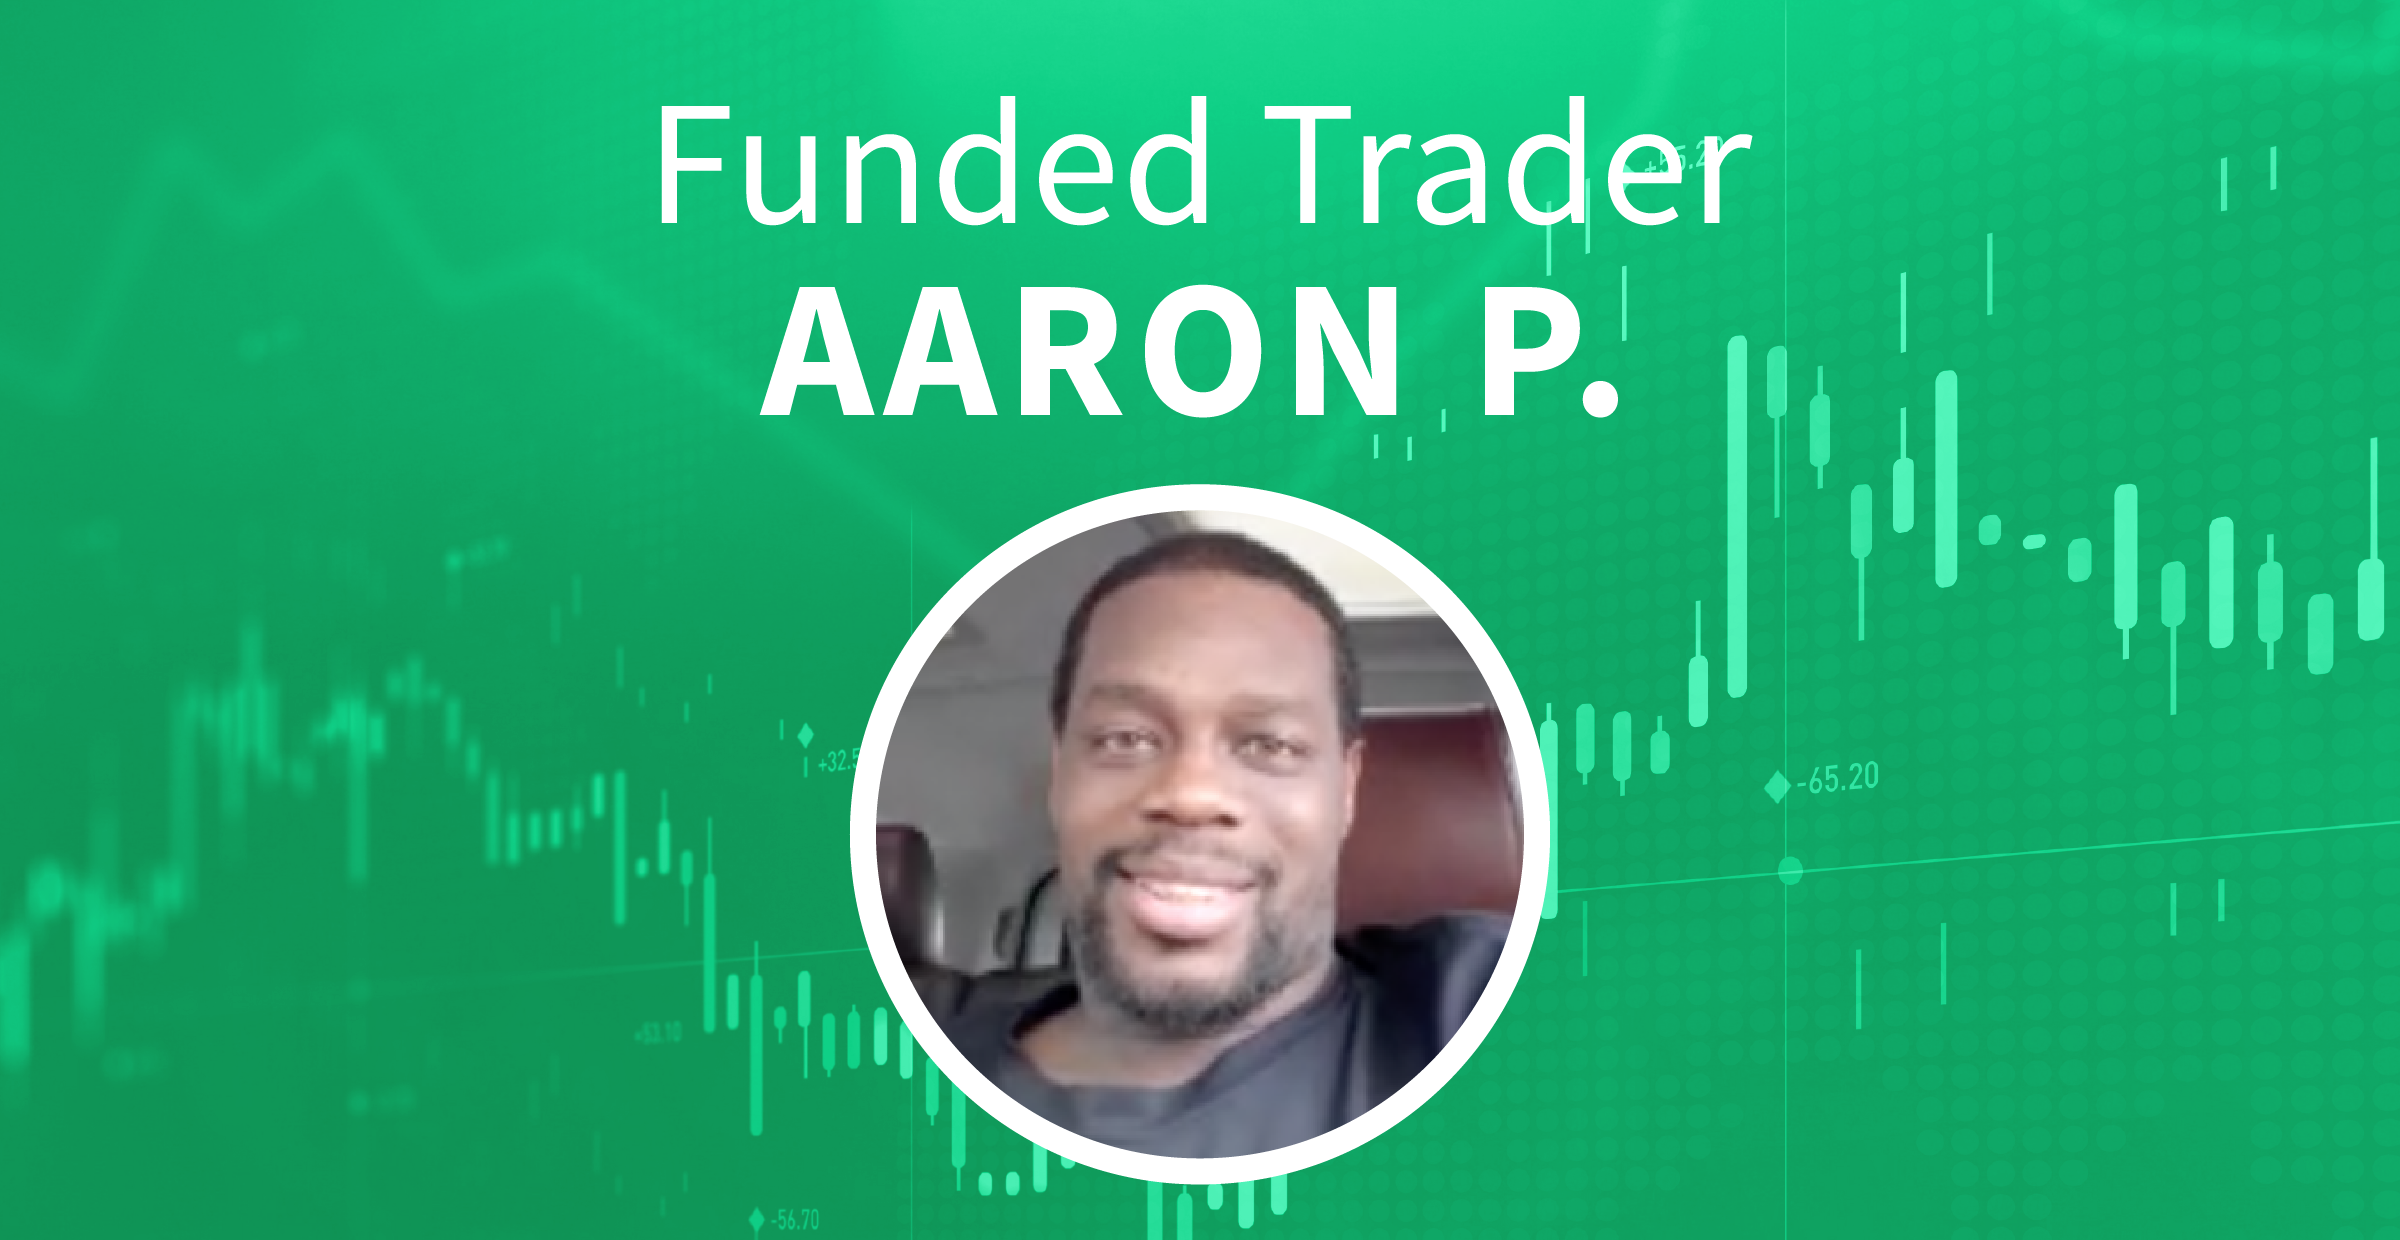 Aaron P Funded Trader